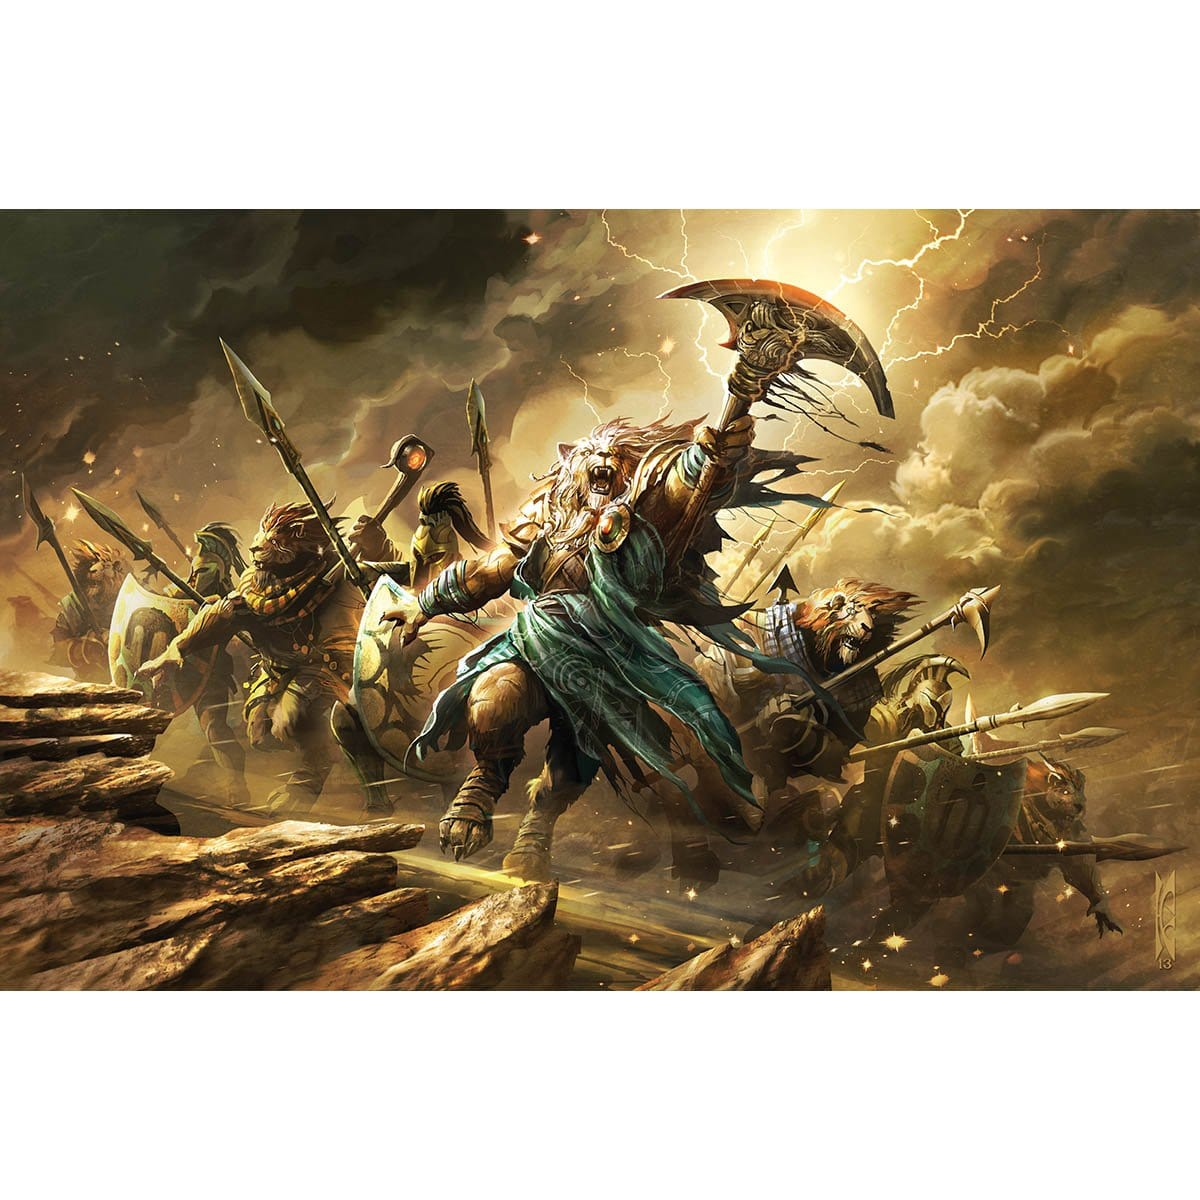 Ajani's Presence Print - Print - Original Magic Art - Accessories for Magic the Gathering and other card games